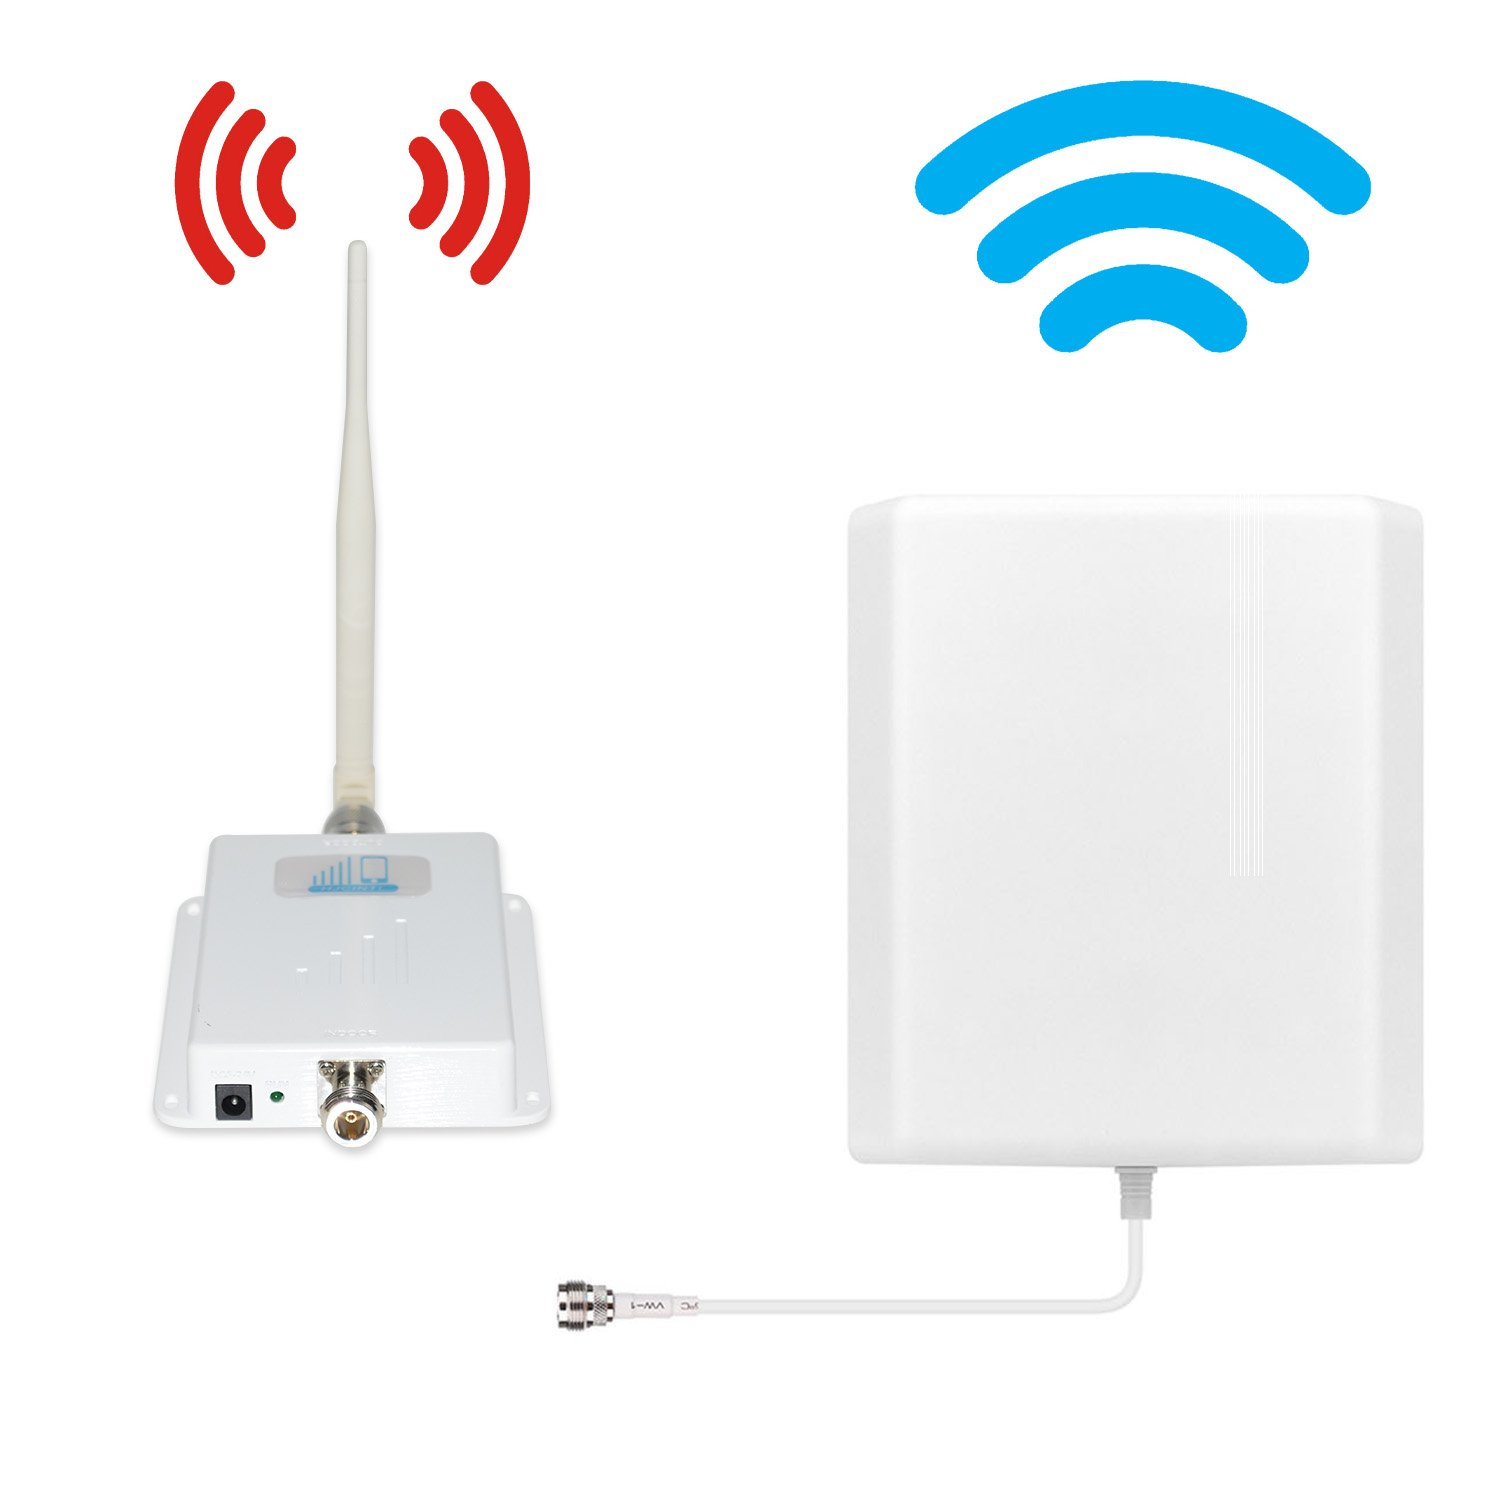 ATT T-Mobile Cell Phone Signal Booster 4G LTE Cell Signal Booster HJCINTL 700MHz Band 12/17 FDD Home Mobile Phone Signal Booster Amplifier Cover- 2500sq ft